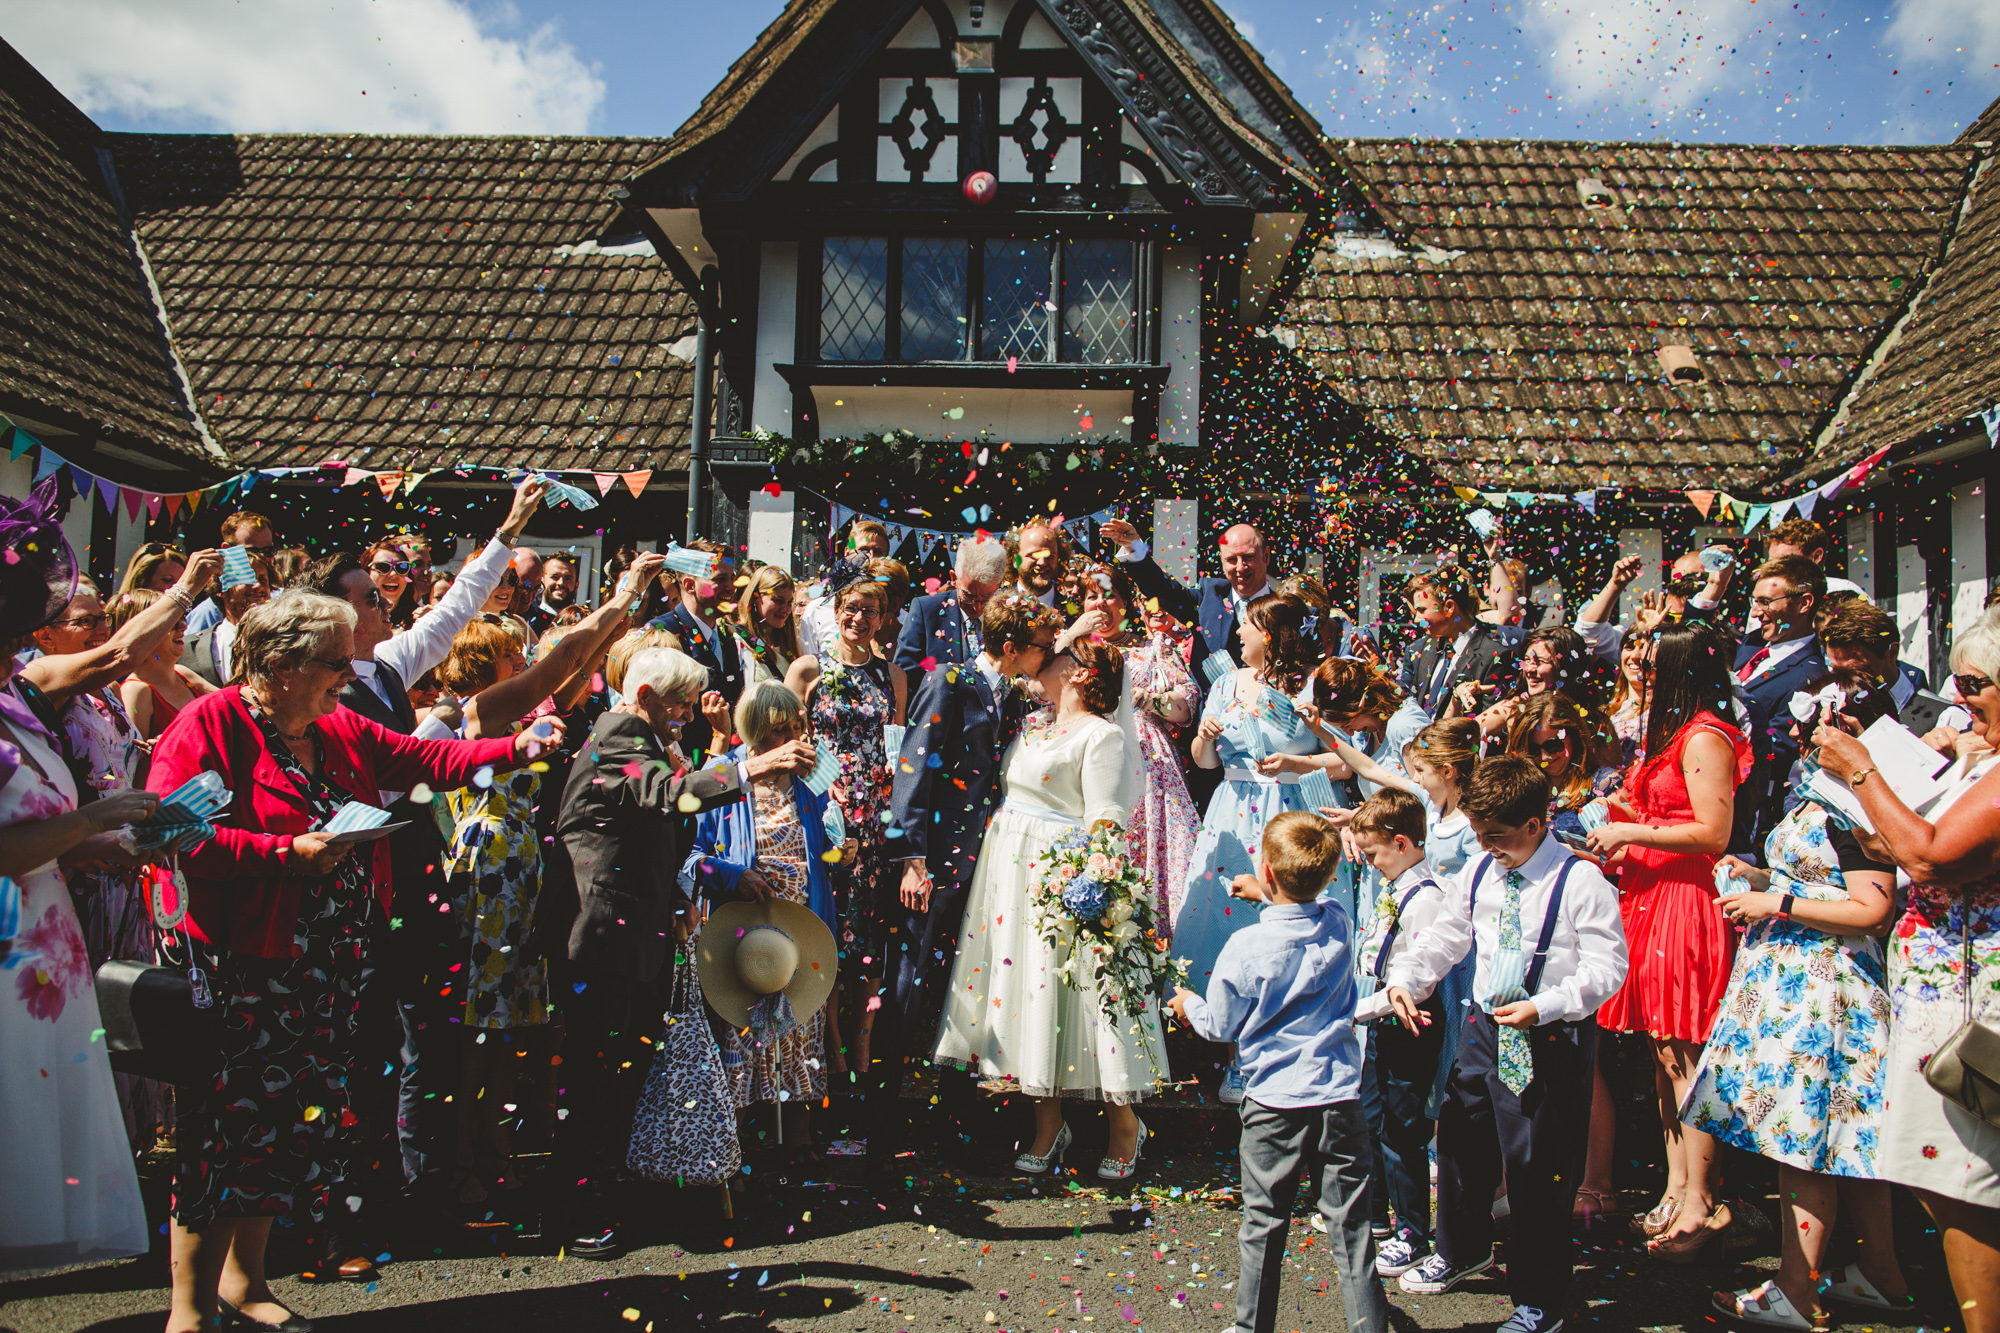 cute vintage village hall wedding, guests throwing rainbow confetti on bride and groom